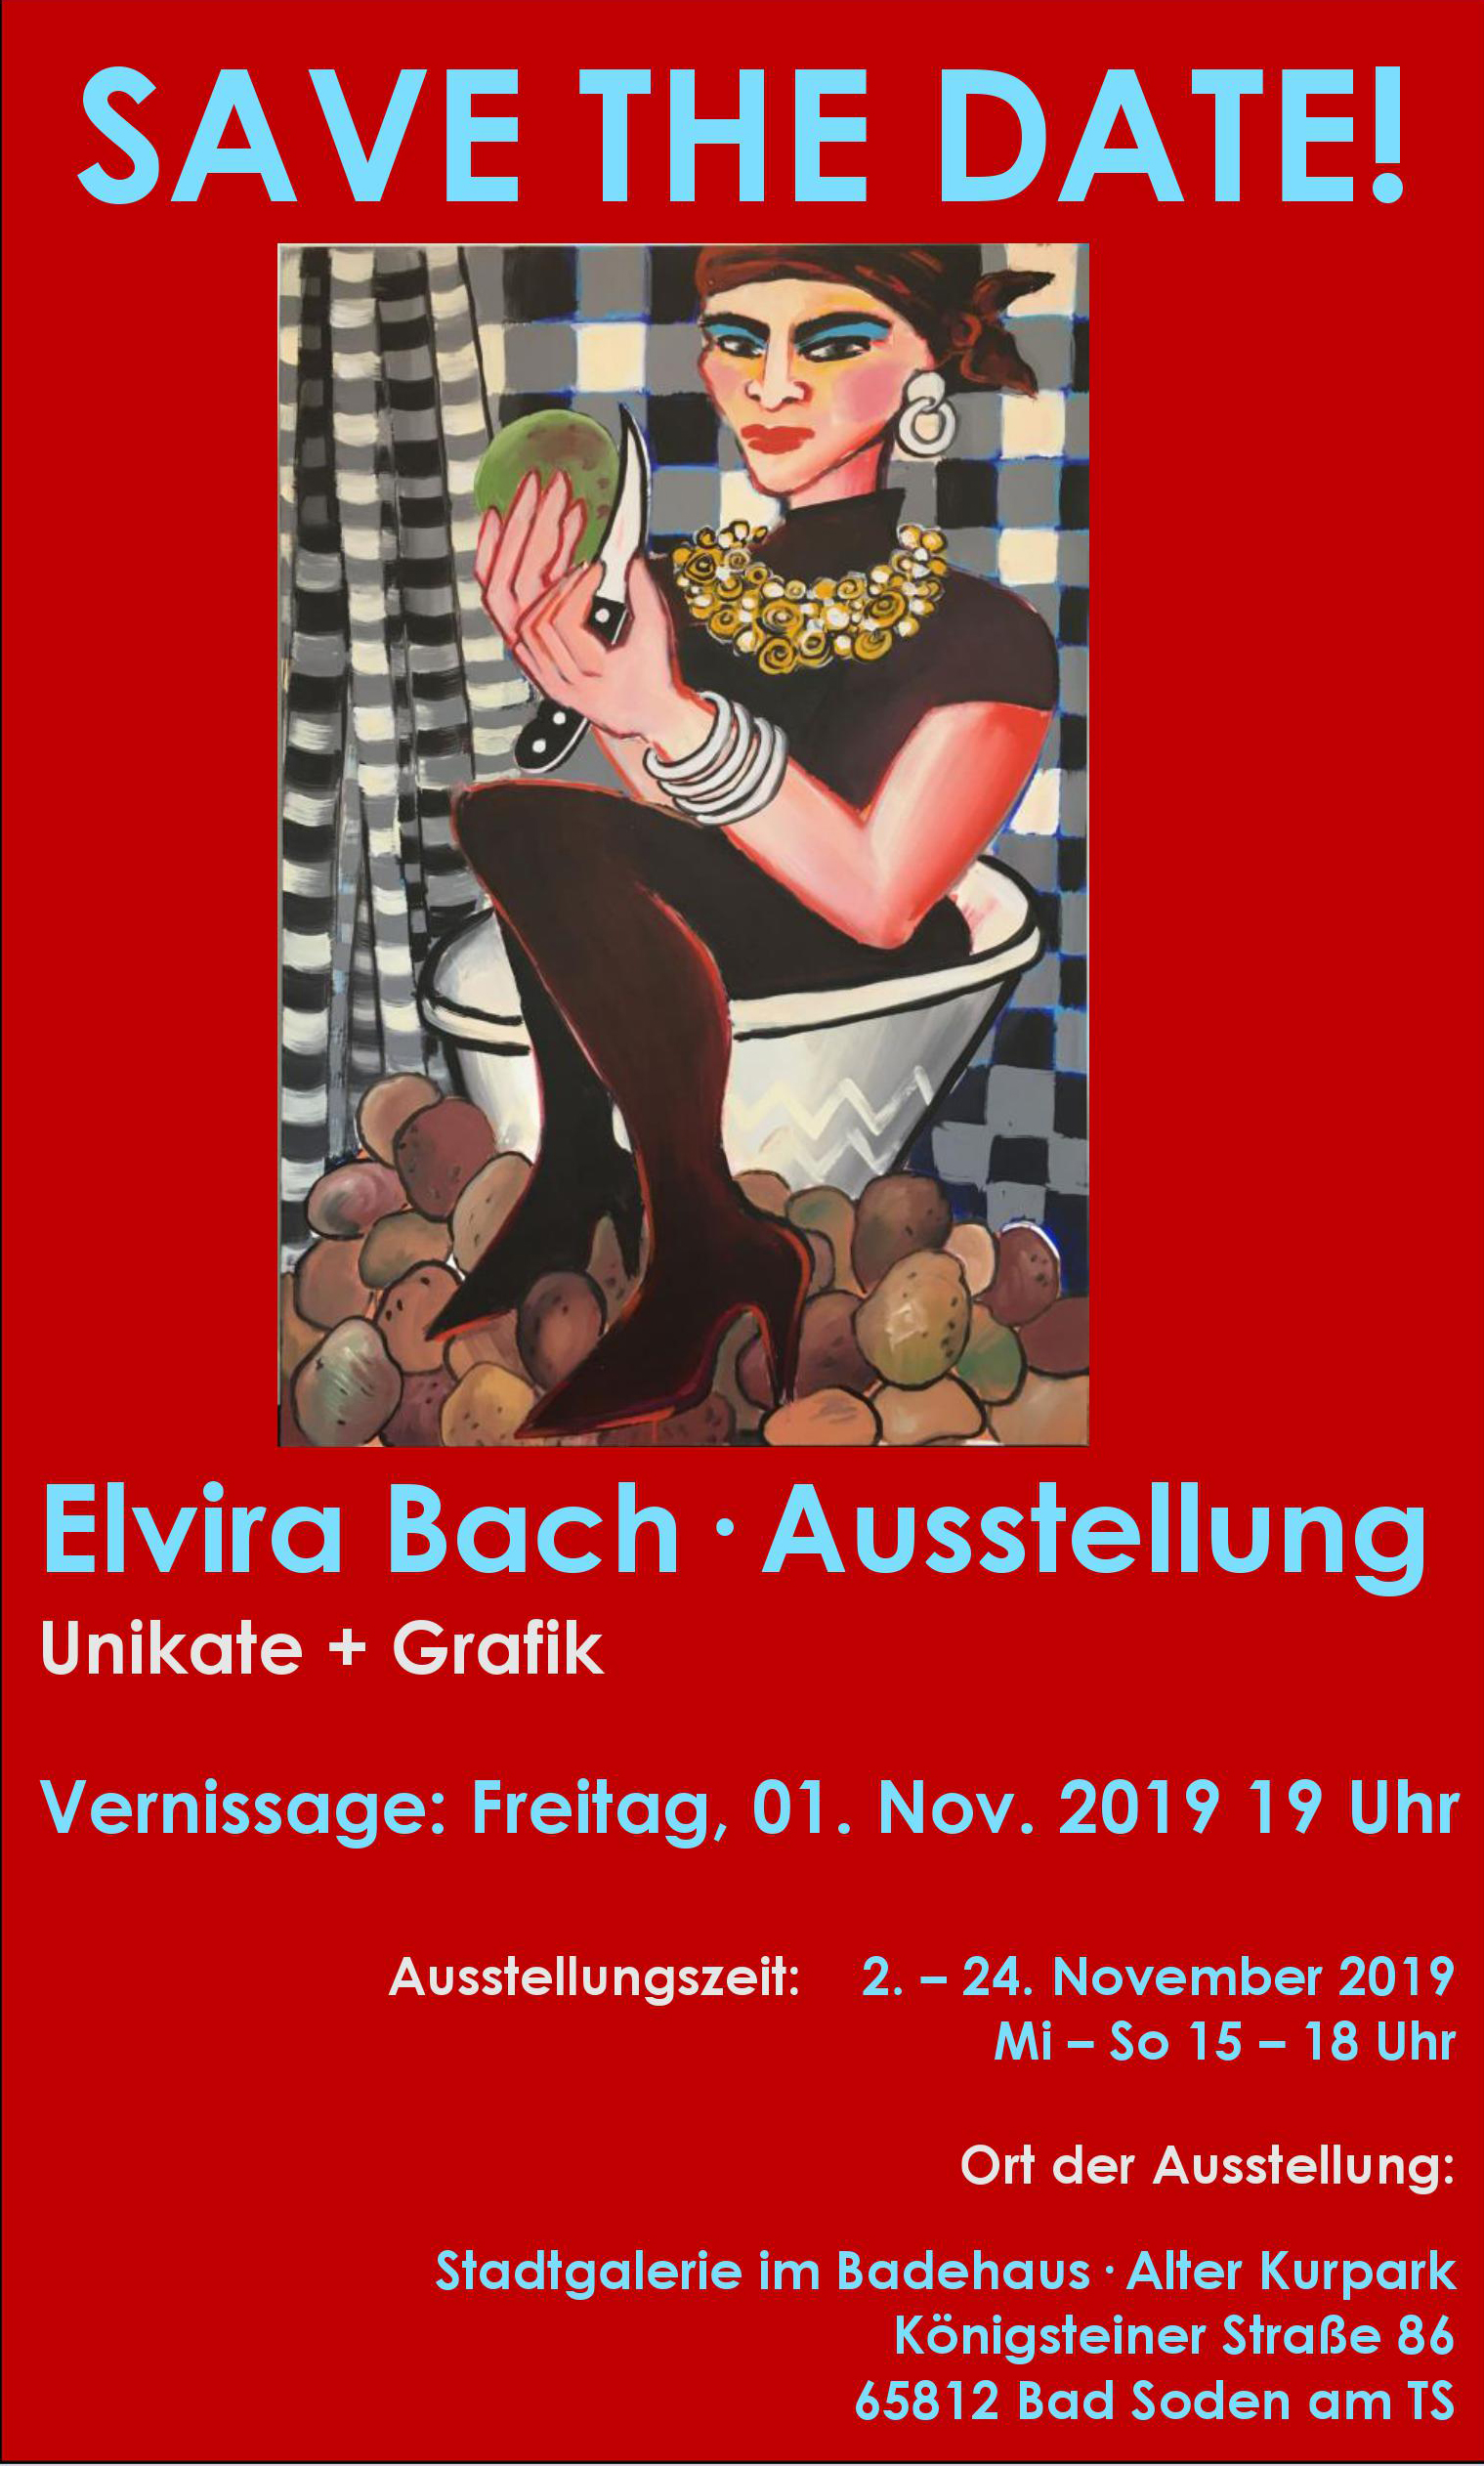 Save-the-Date-Elvira-Bach